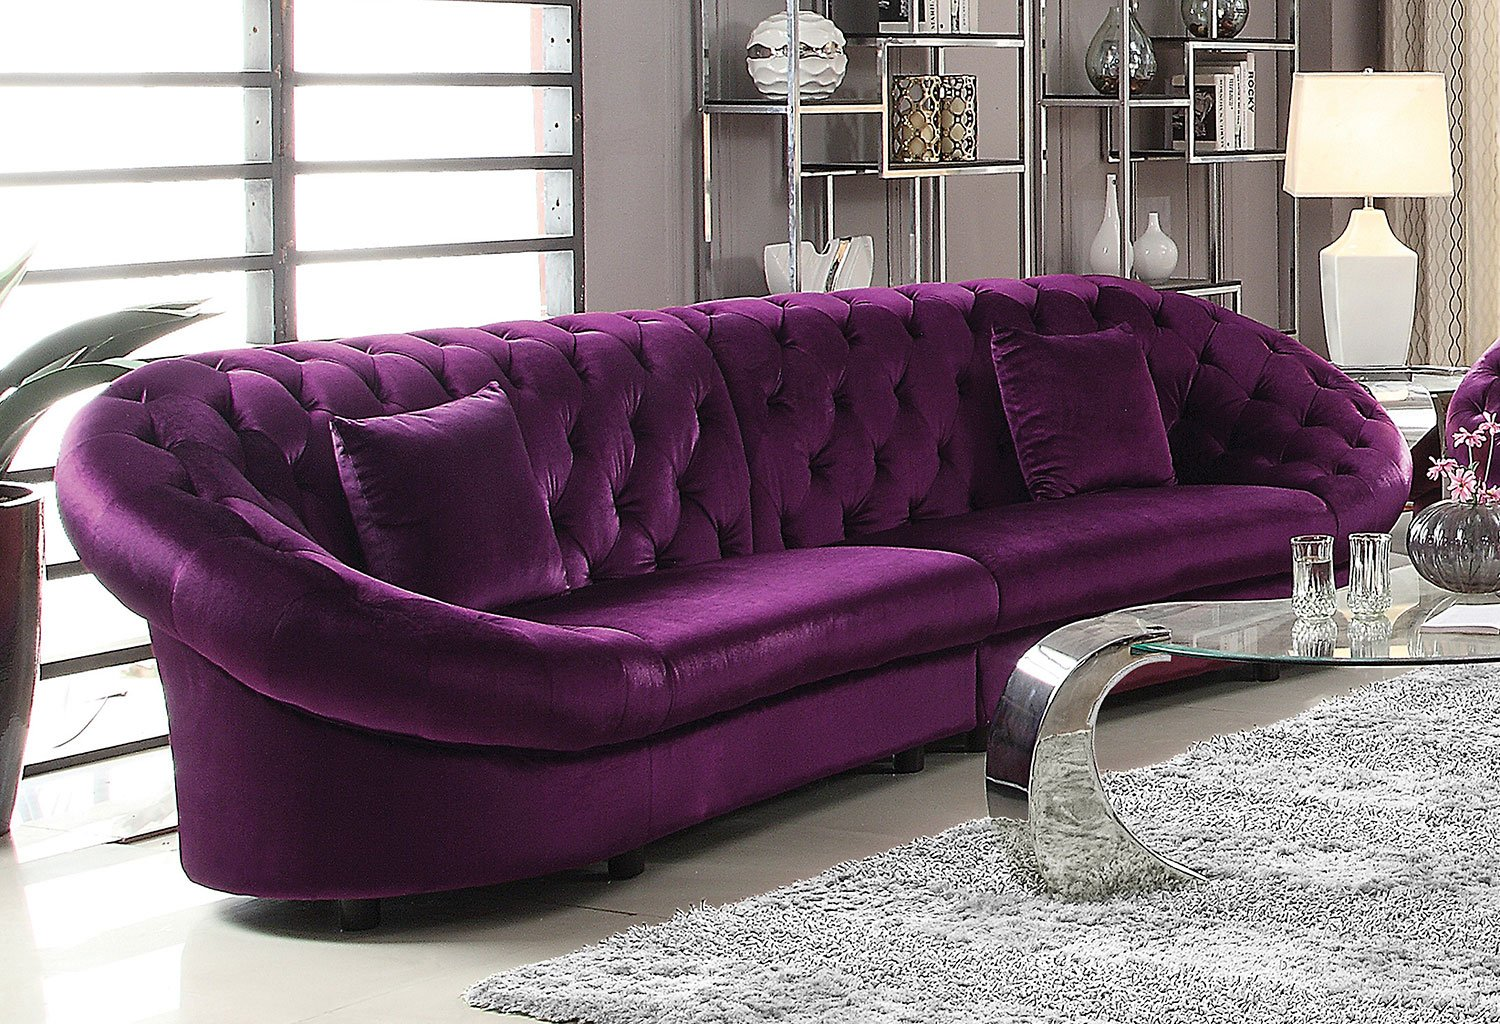 Couch And Sofa Sets Romanus Sectional Sofa (purple) - Sofas - Living Room